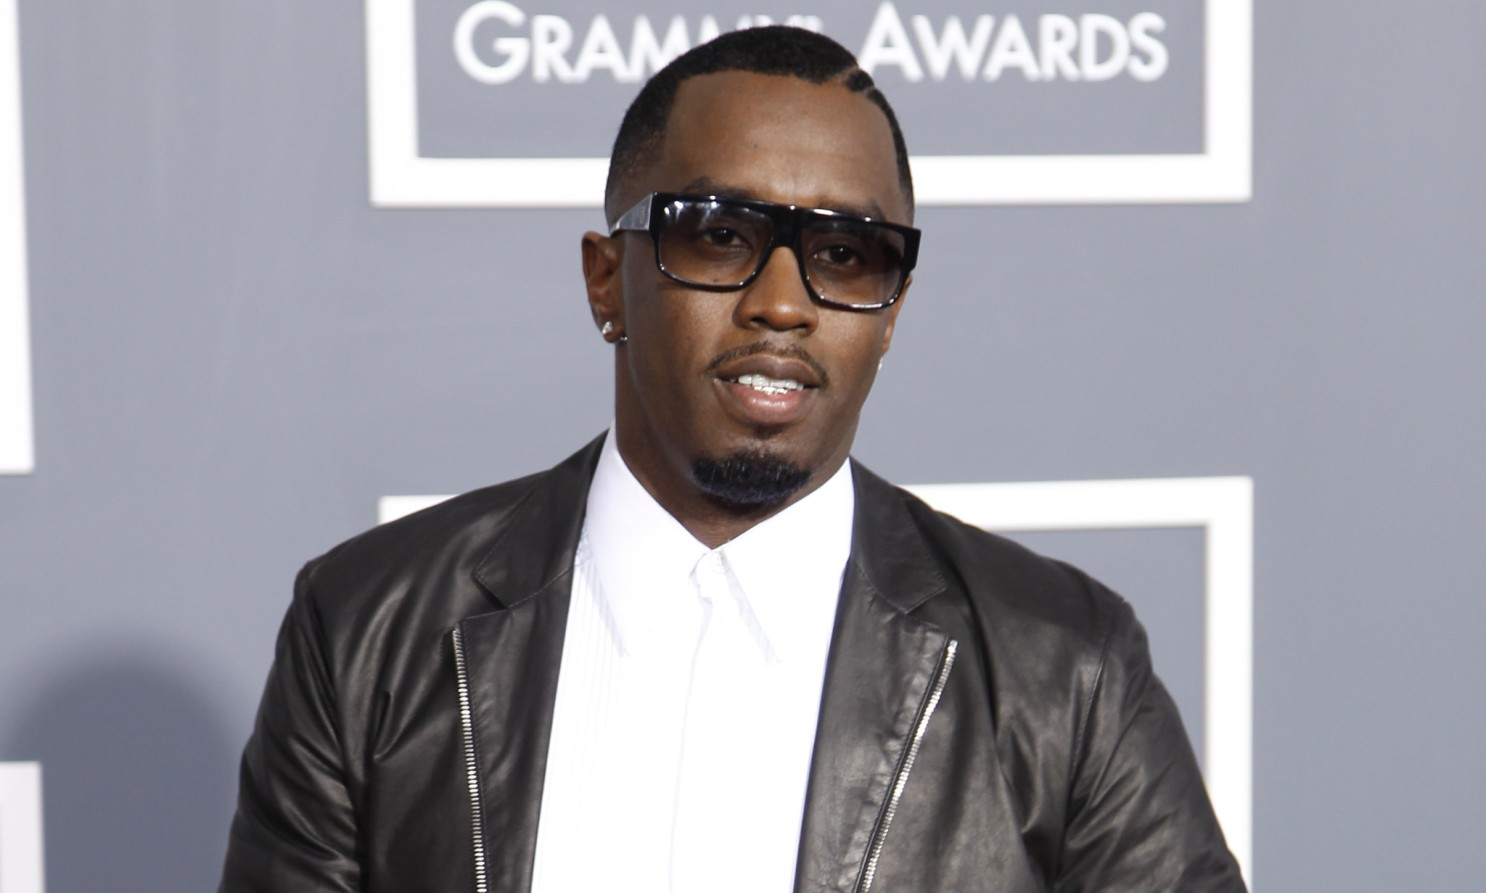 diddy-has-a-message-about-nigeria-check-it-out-here